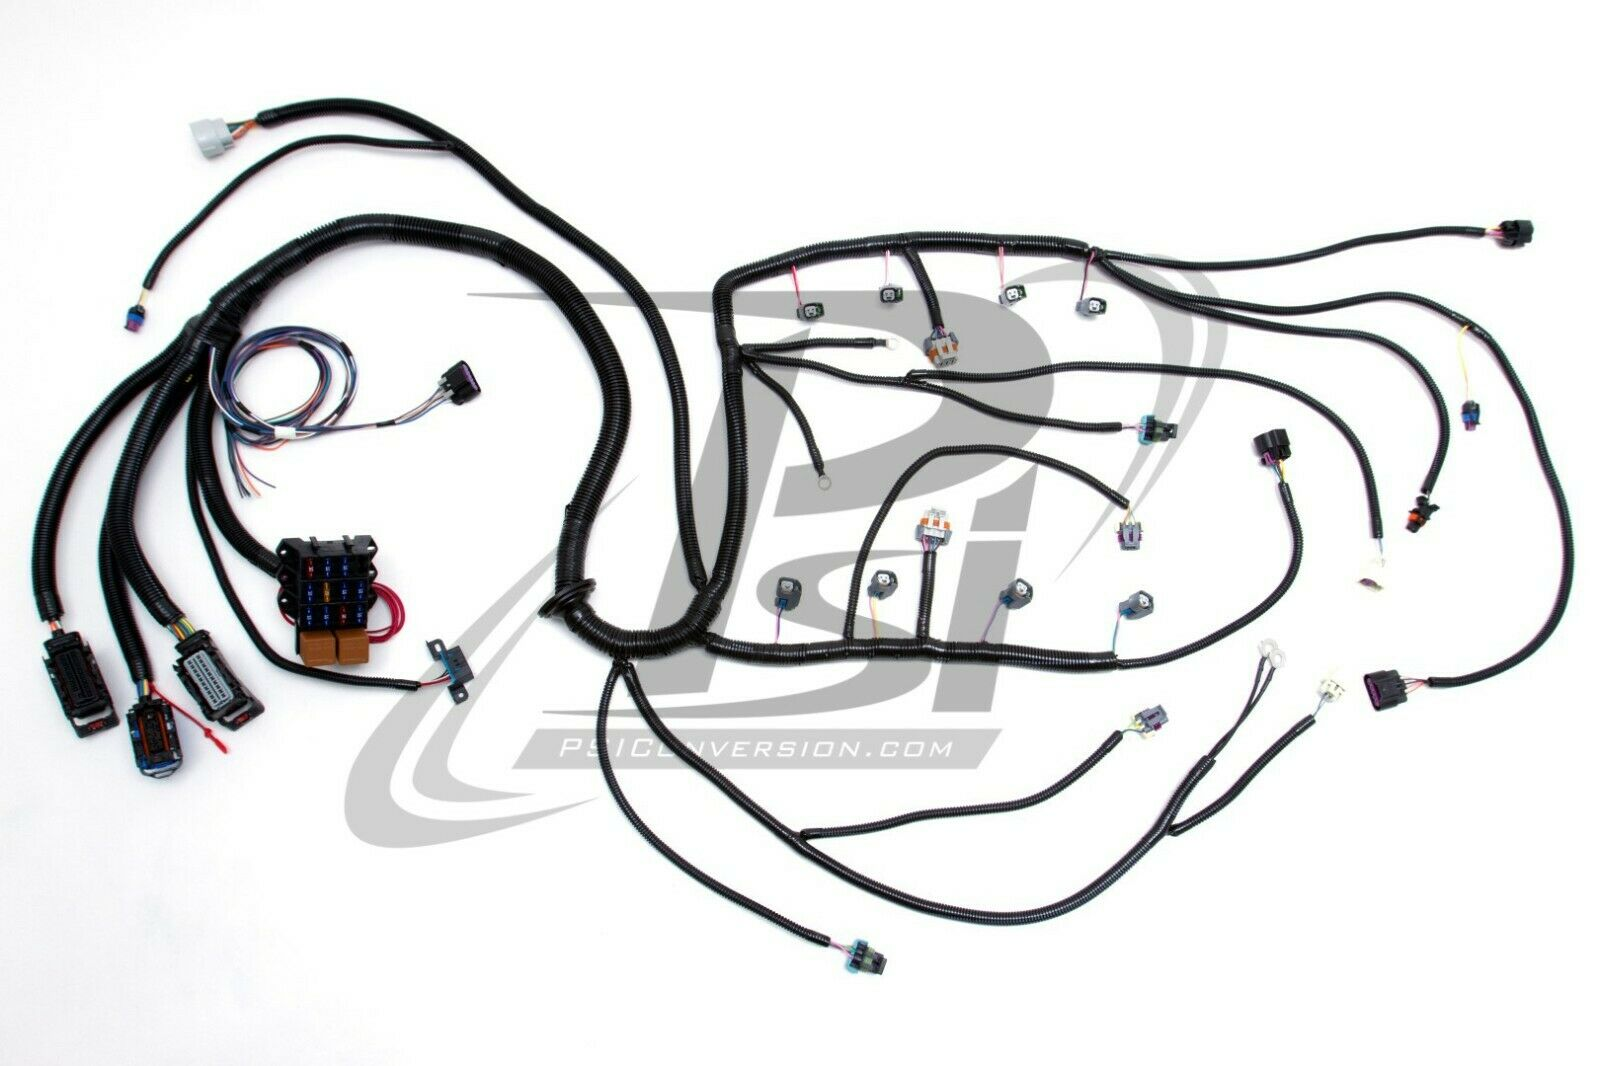 2009 2013 Ly6 60l L92 62l Psi Standalone Wiring Harness W Lt1 700r4 For Sale 1 Of 4 See More